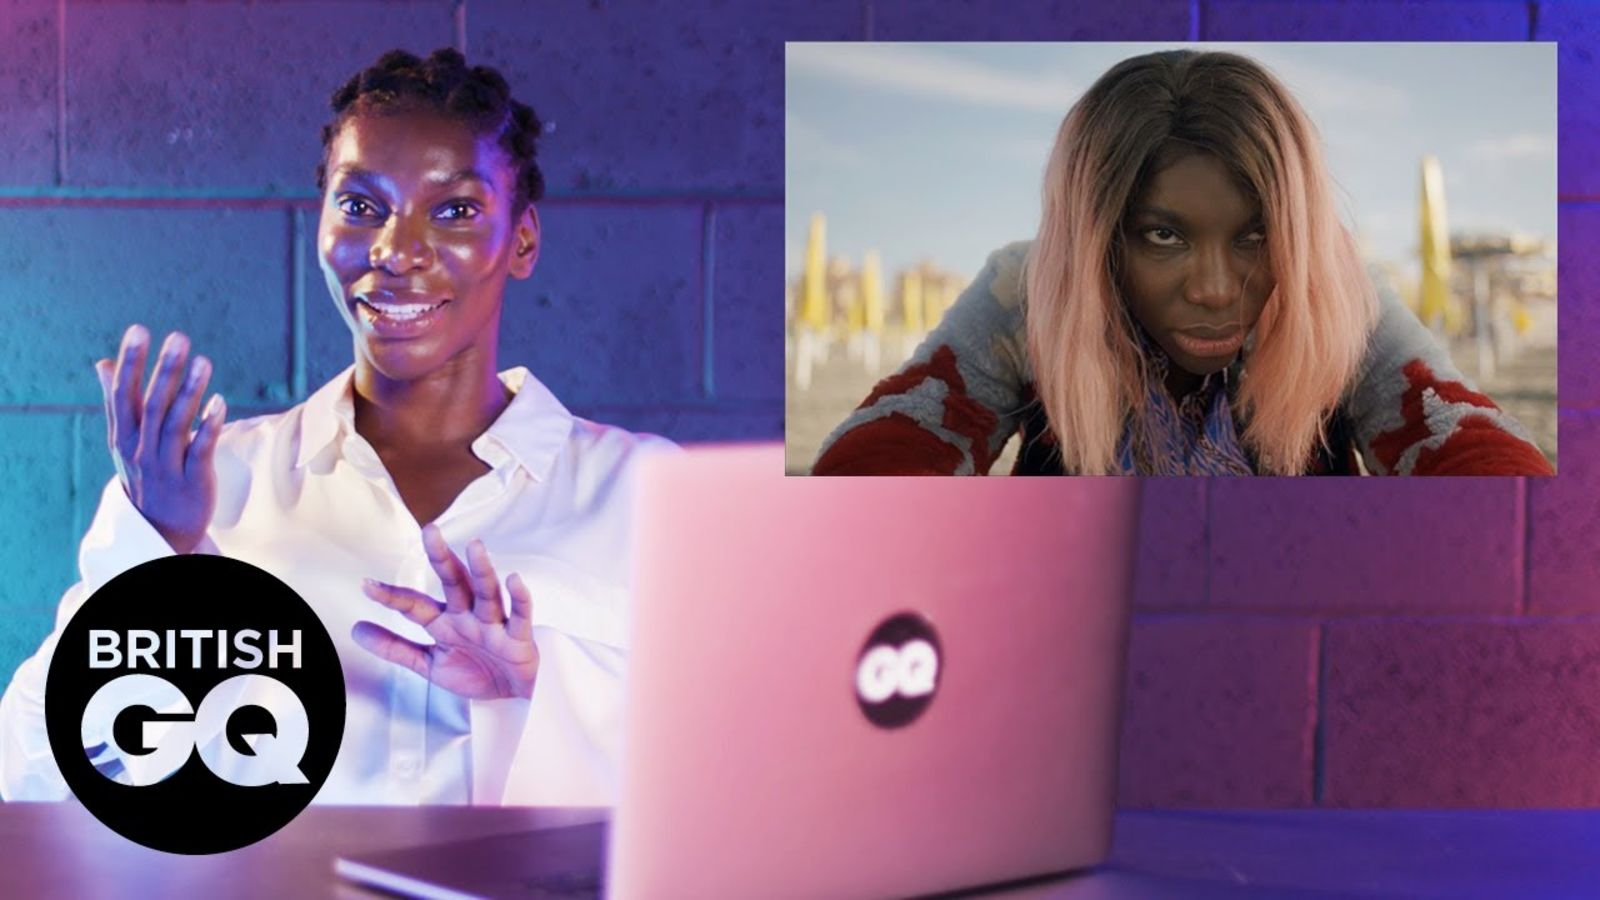 Michaela Coel reacts to I May Destroy You scene